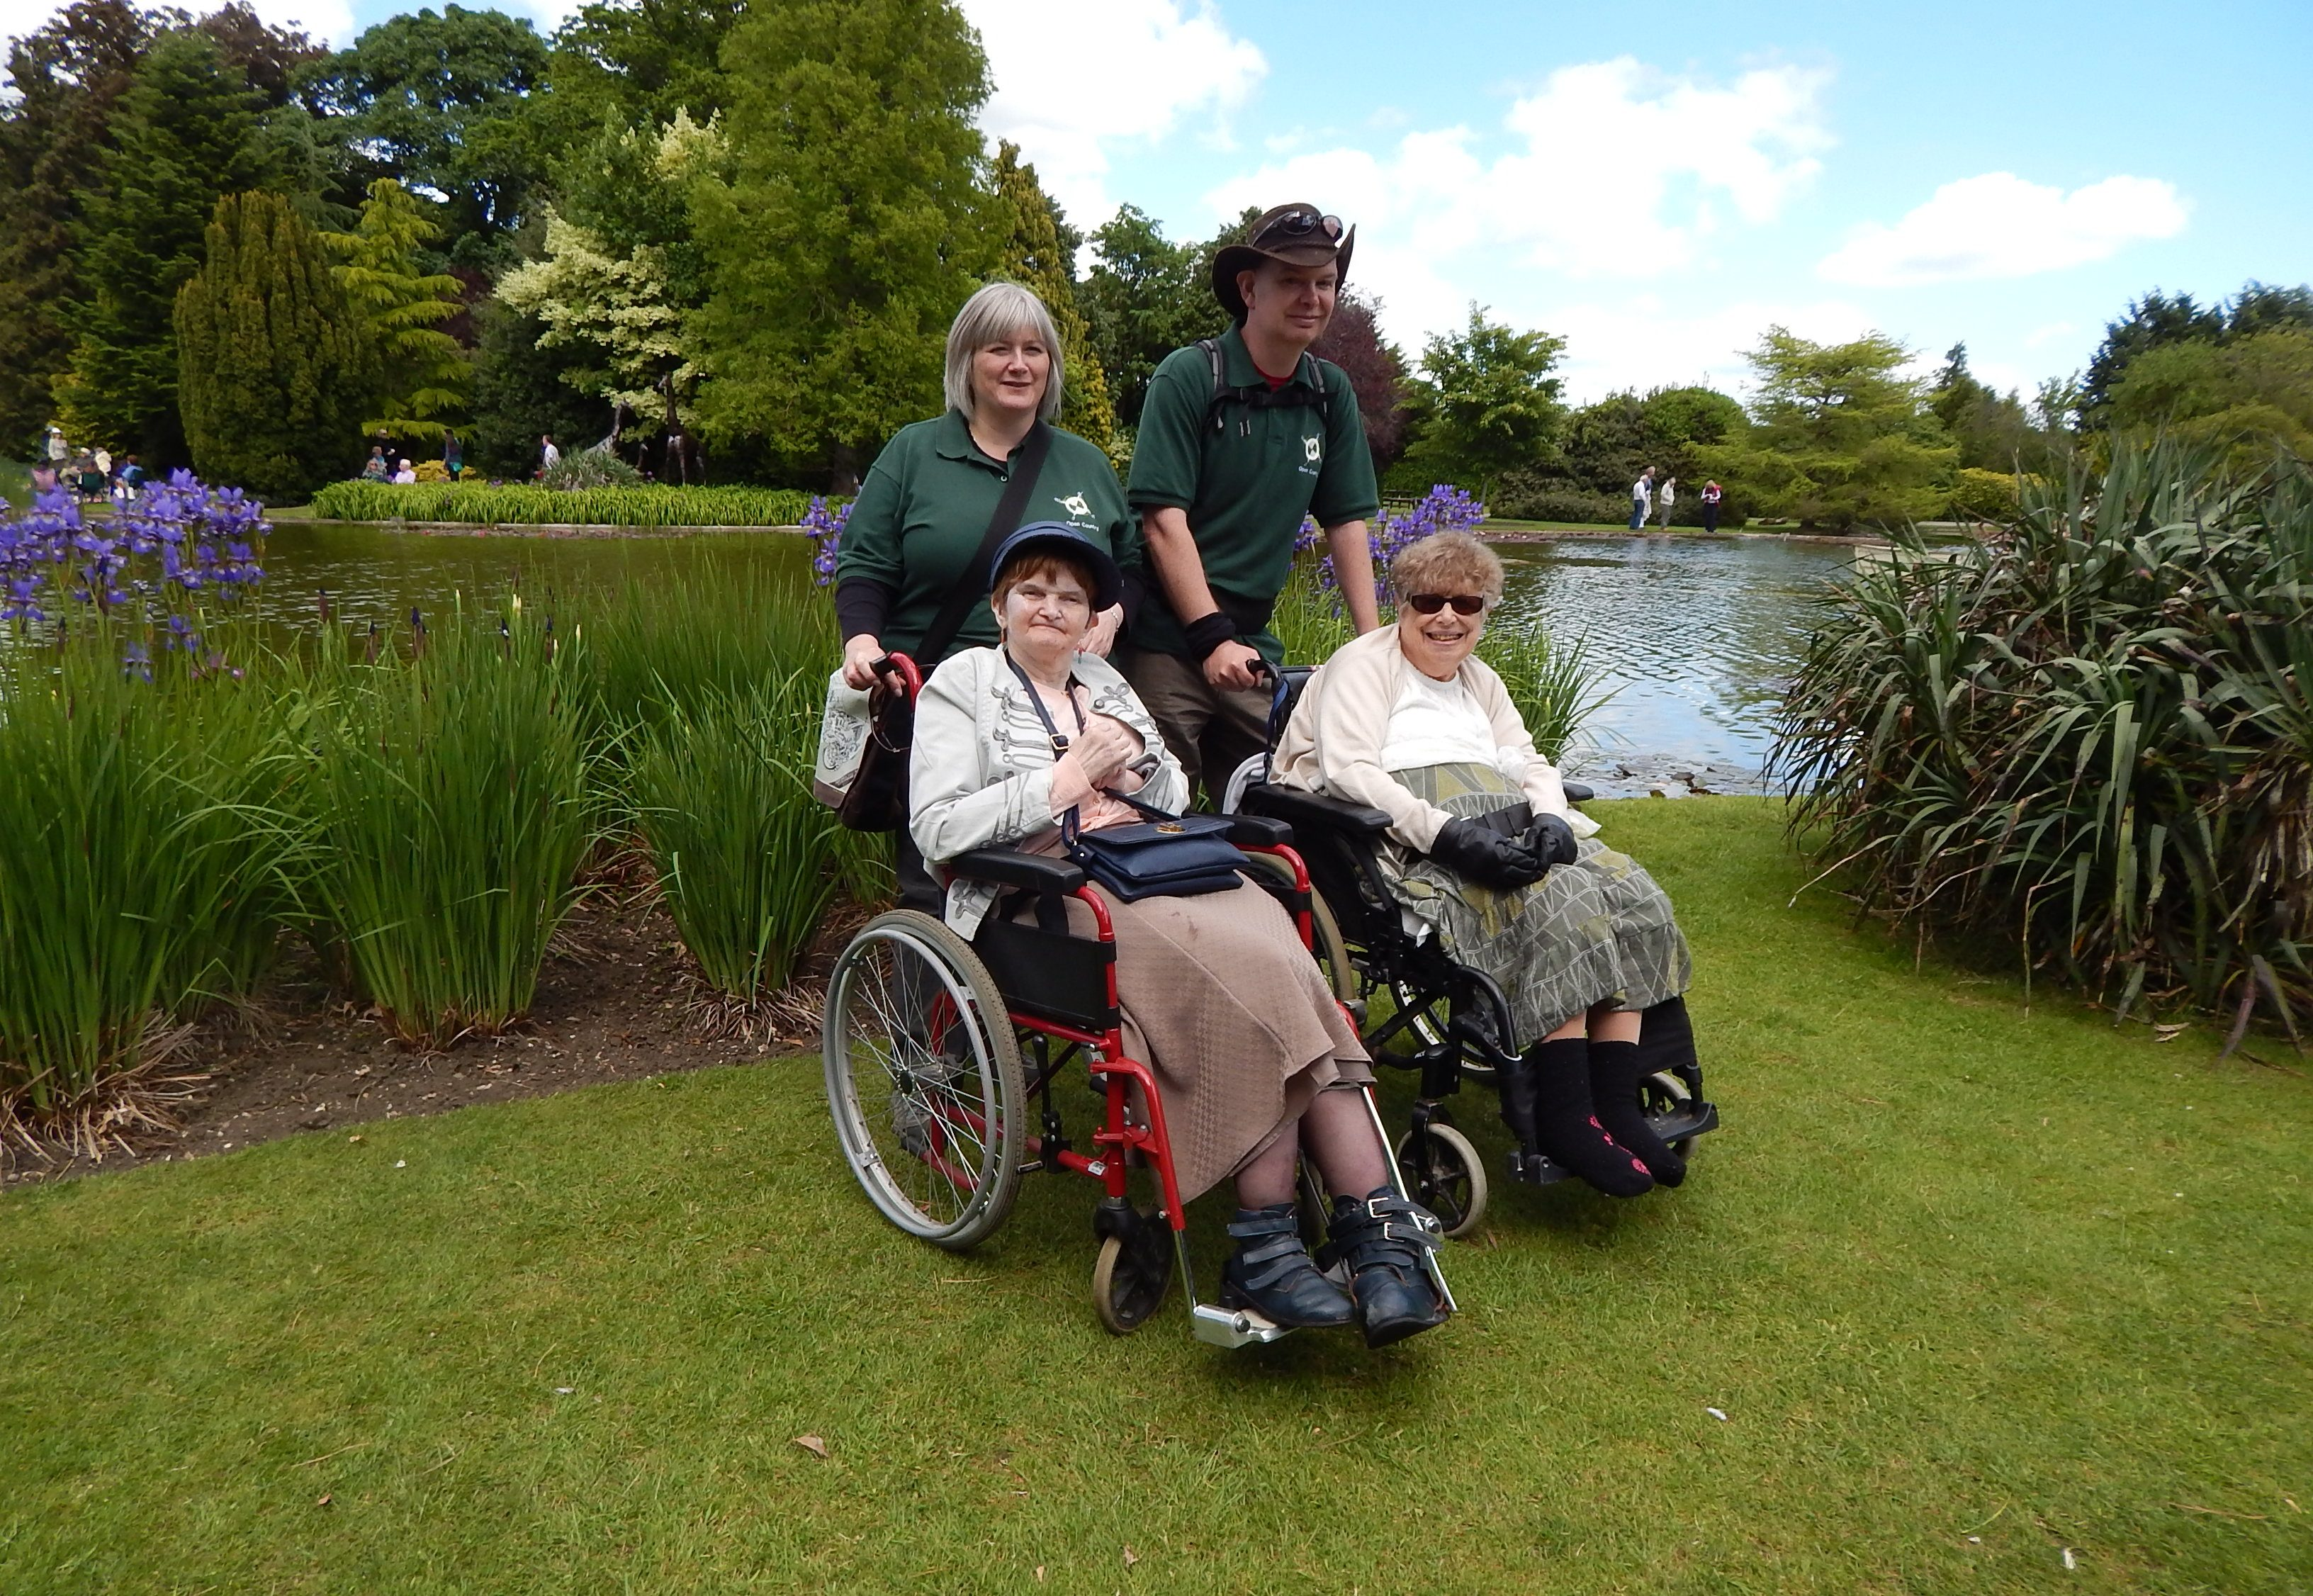 A man and a woman standing on grass behind two women in wheelchairs. There is a lake and trees in the background.